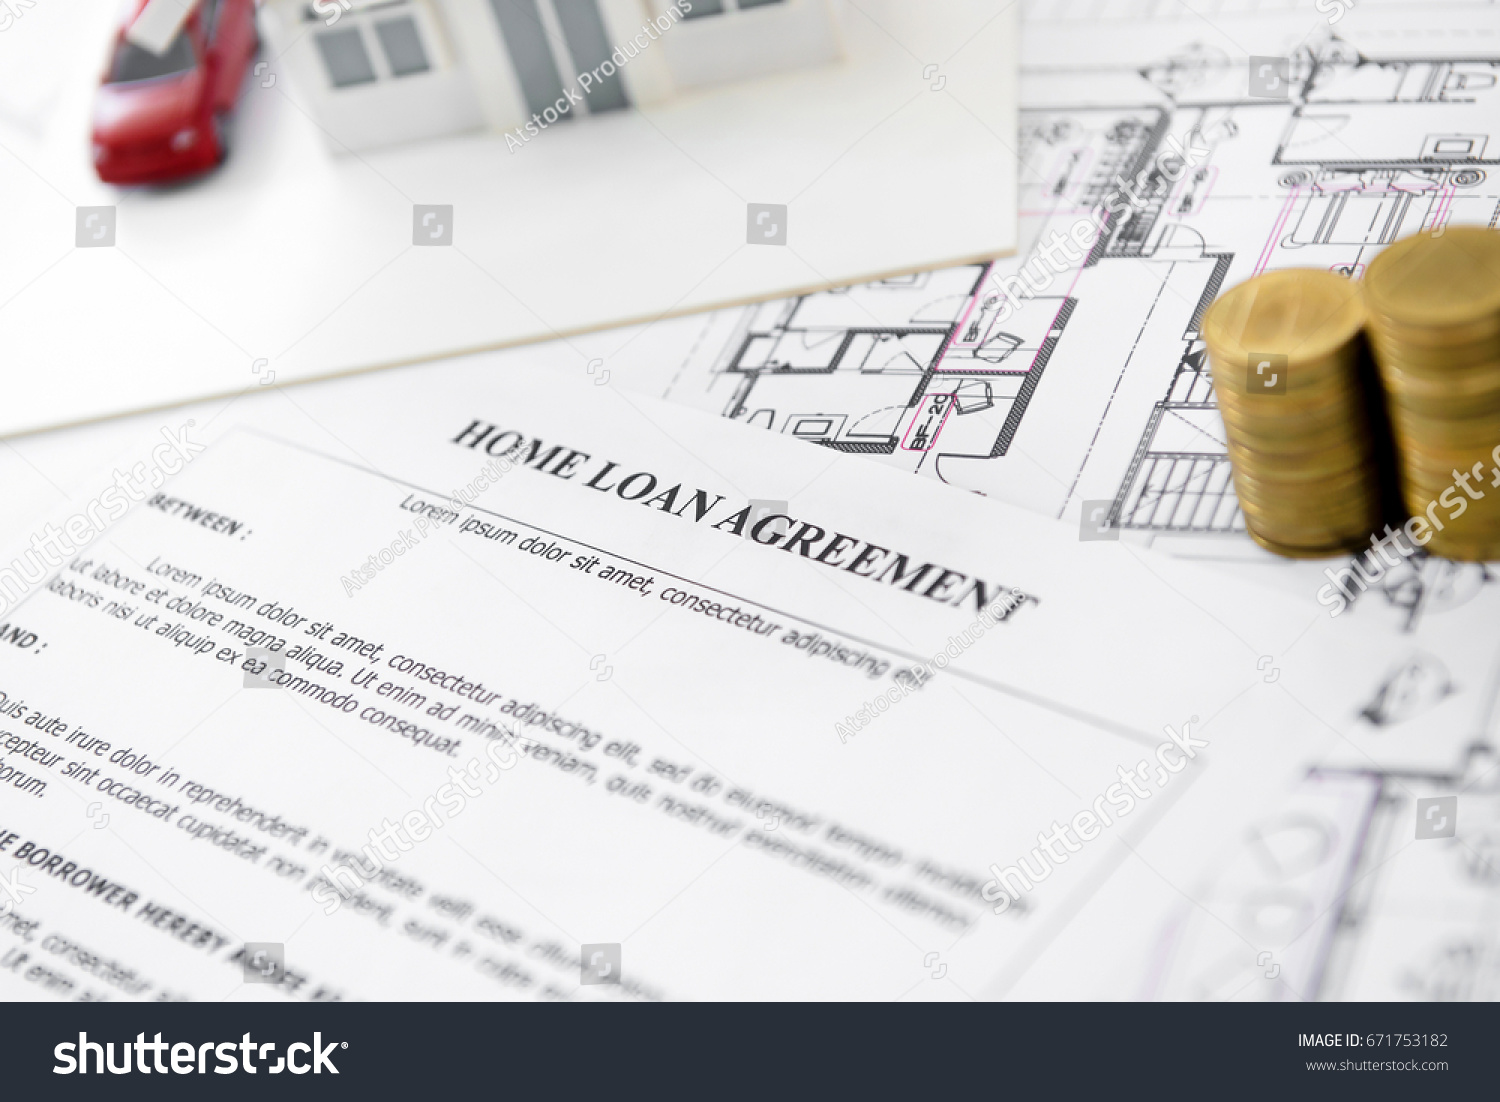 Home loan agreement form paper house stock photo 671753182 home loan agreement form paper with house model blueprint and some money on the table malvernweather